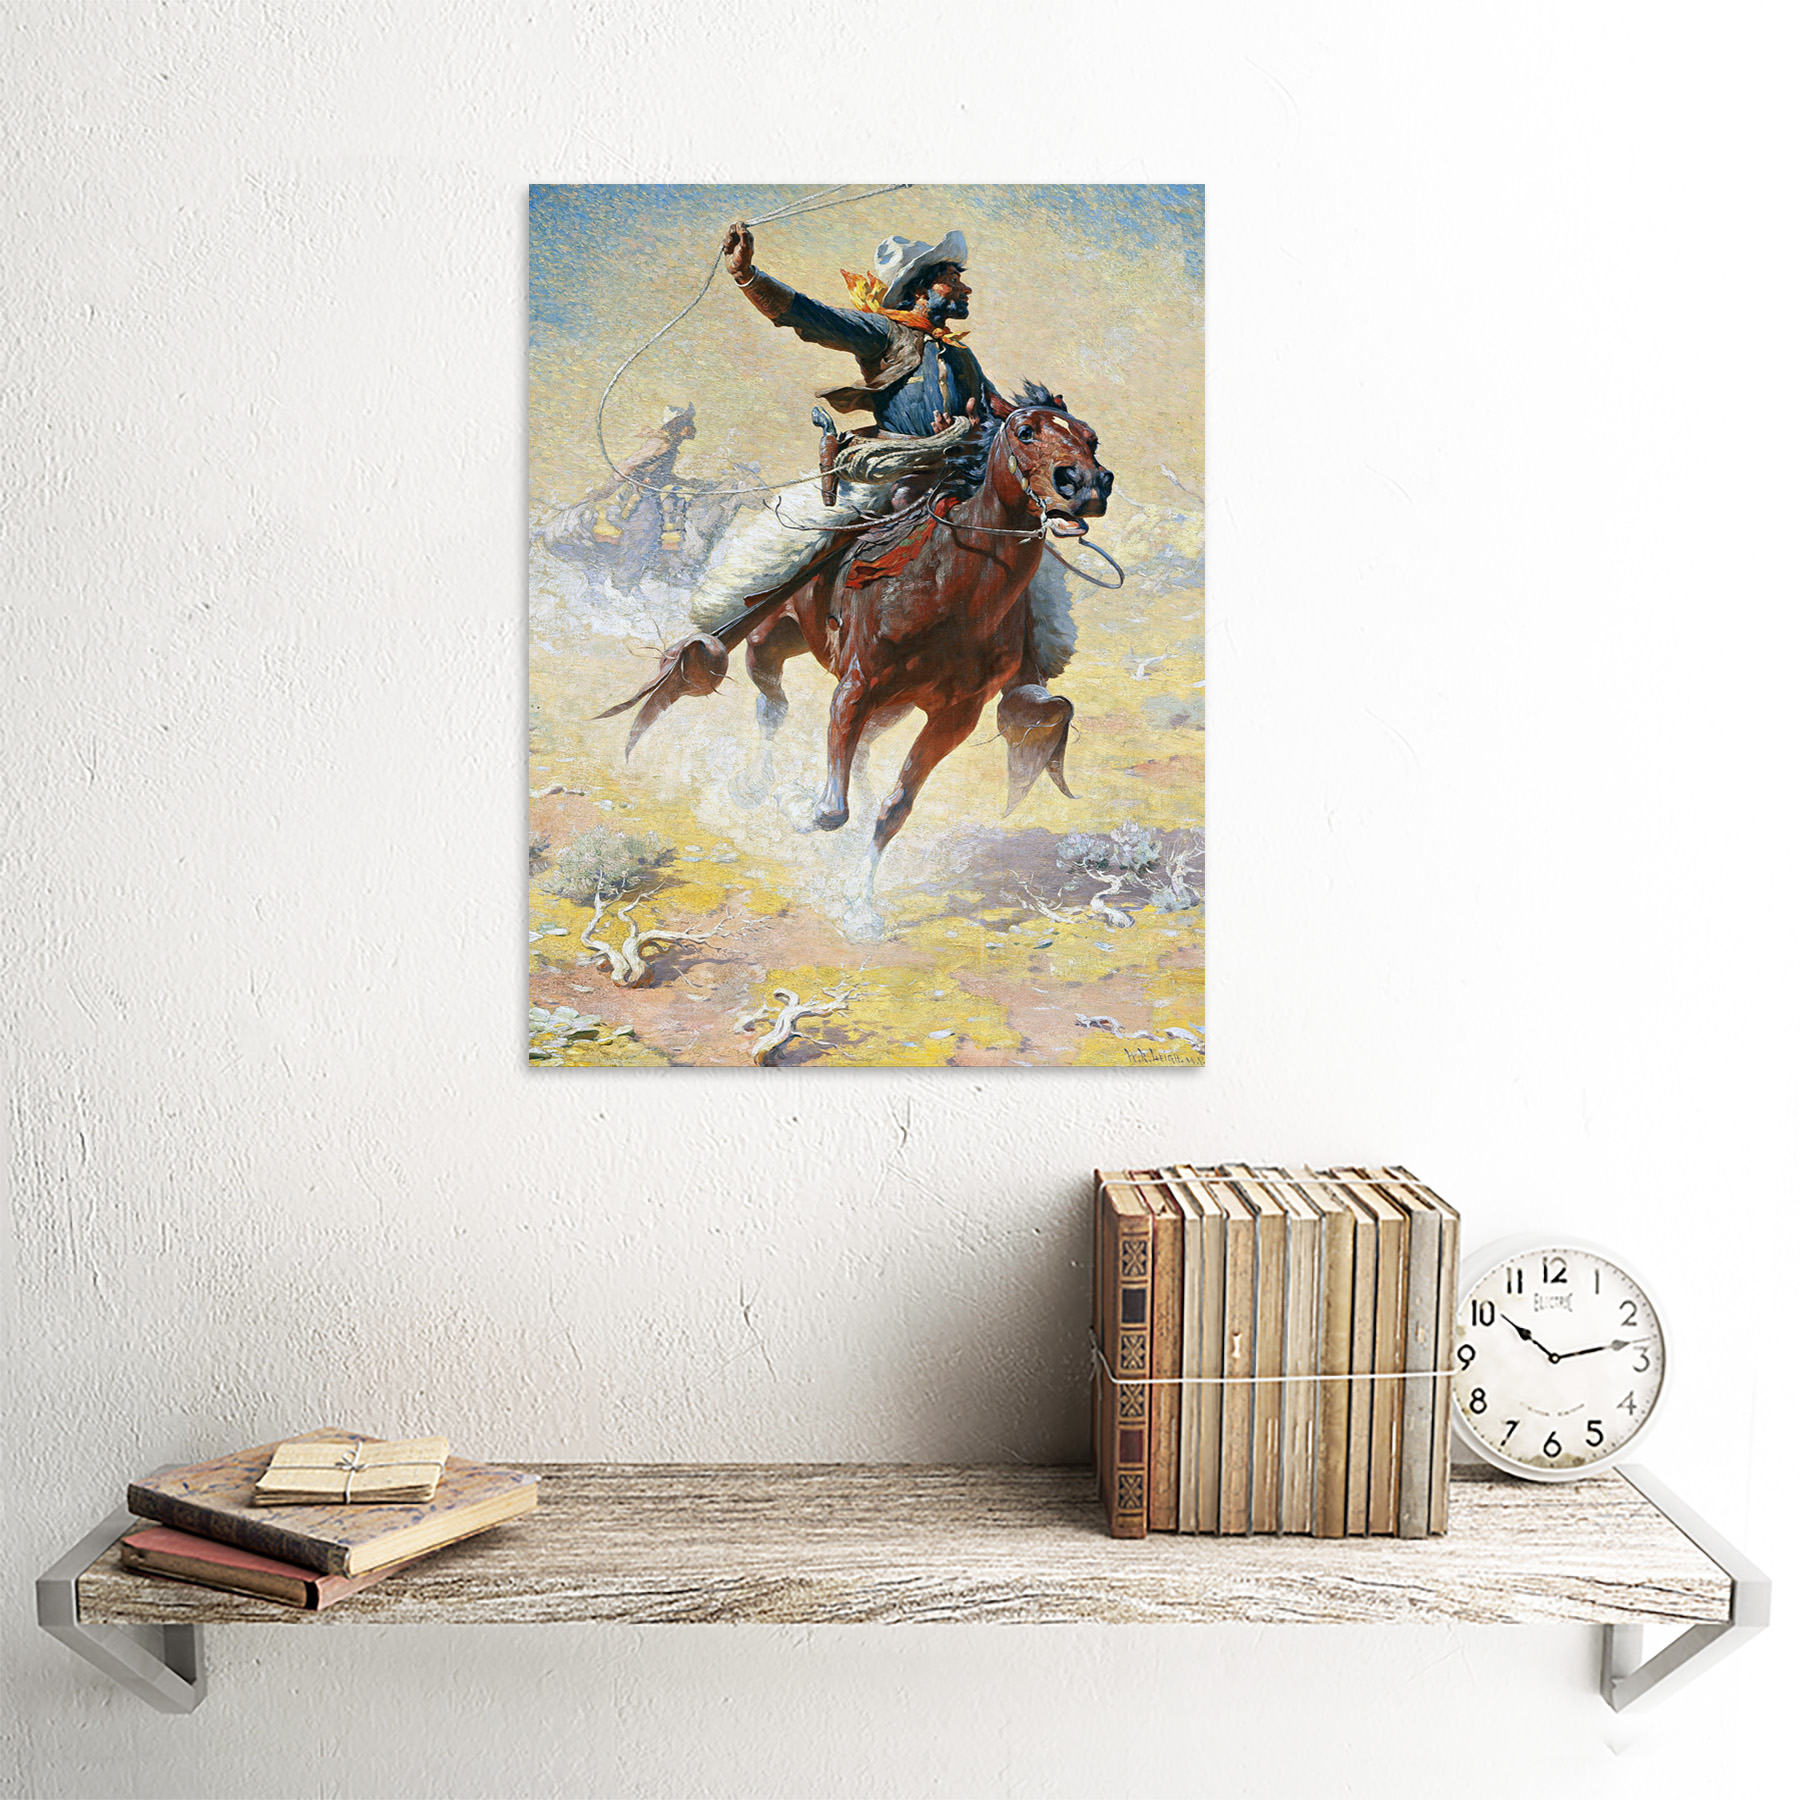 Leigh-The-Roping-Cowboy-Lasso-Horse-Painting-Art-Print-Framed-12x16 thumbnail 23